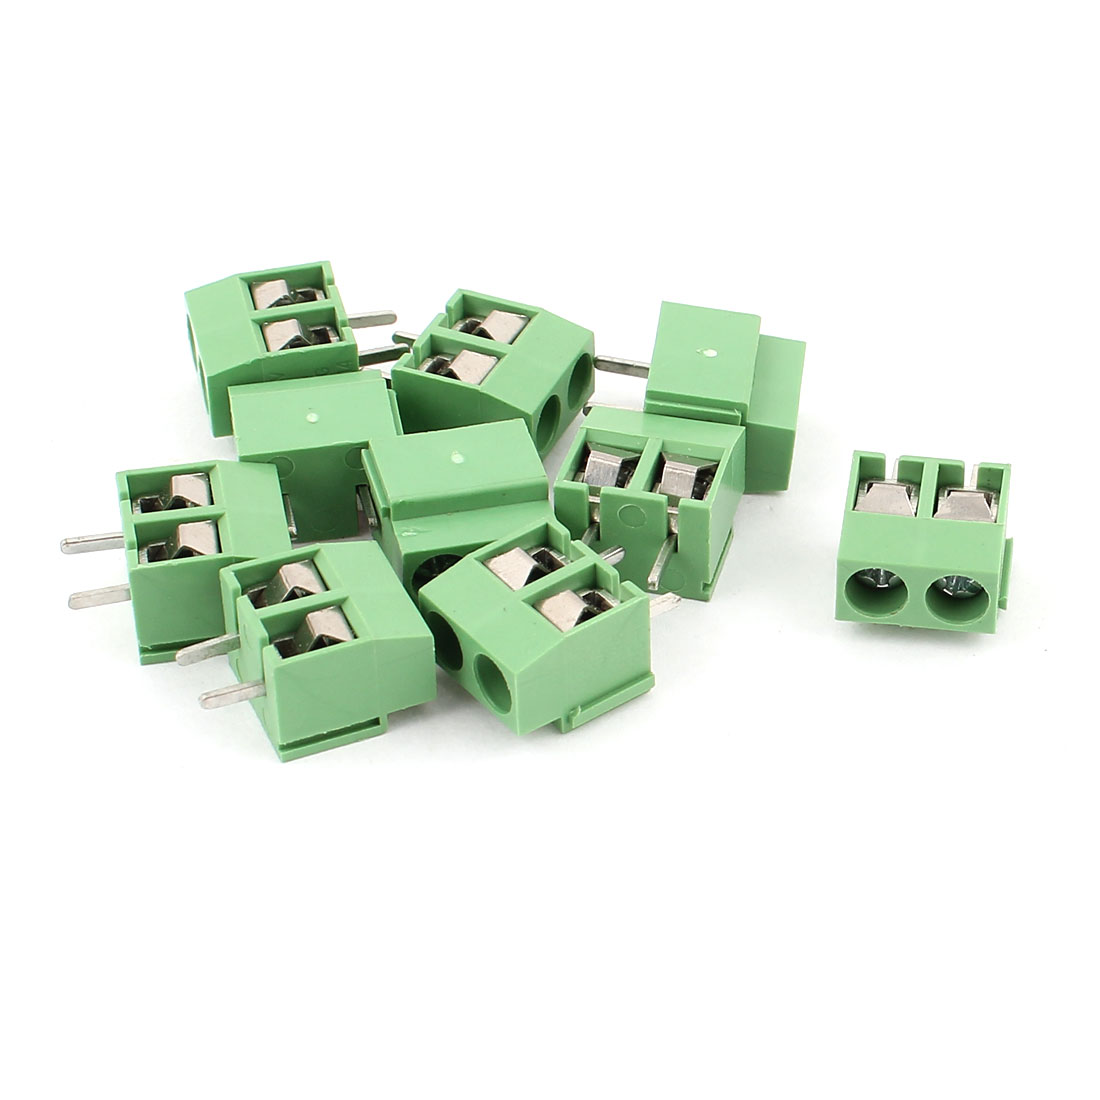 10 Pcs AC 300V 10A PCB Screw Terminal Block Connector 4mm Pitch Green